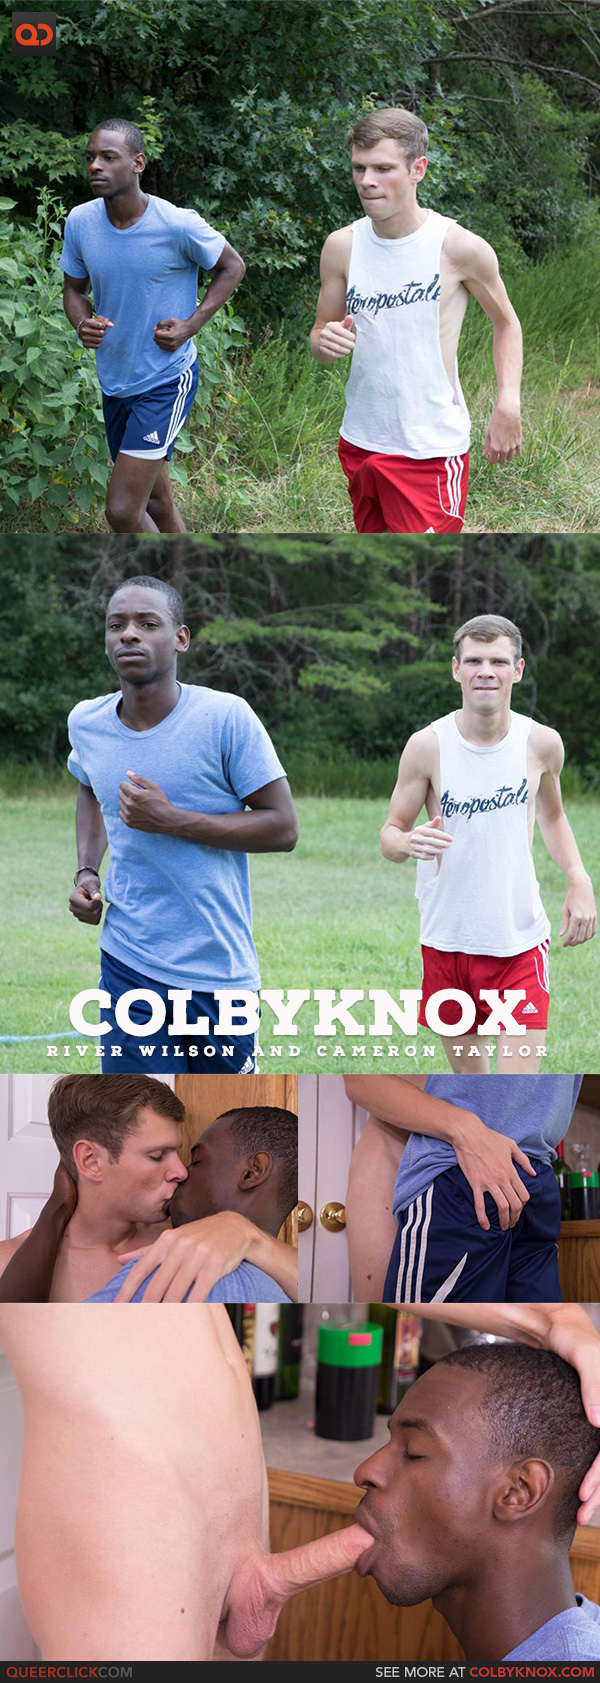 Colby Knox: River Wilson and Cameron Taylor